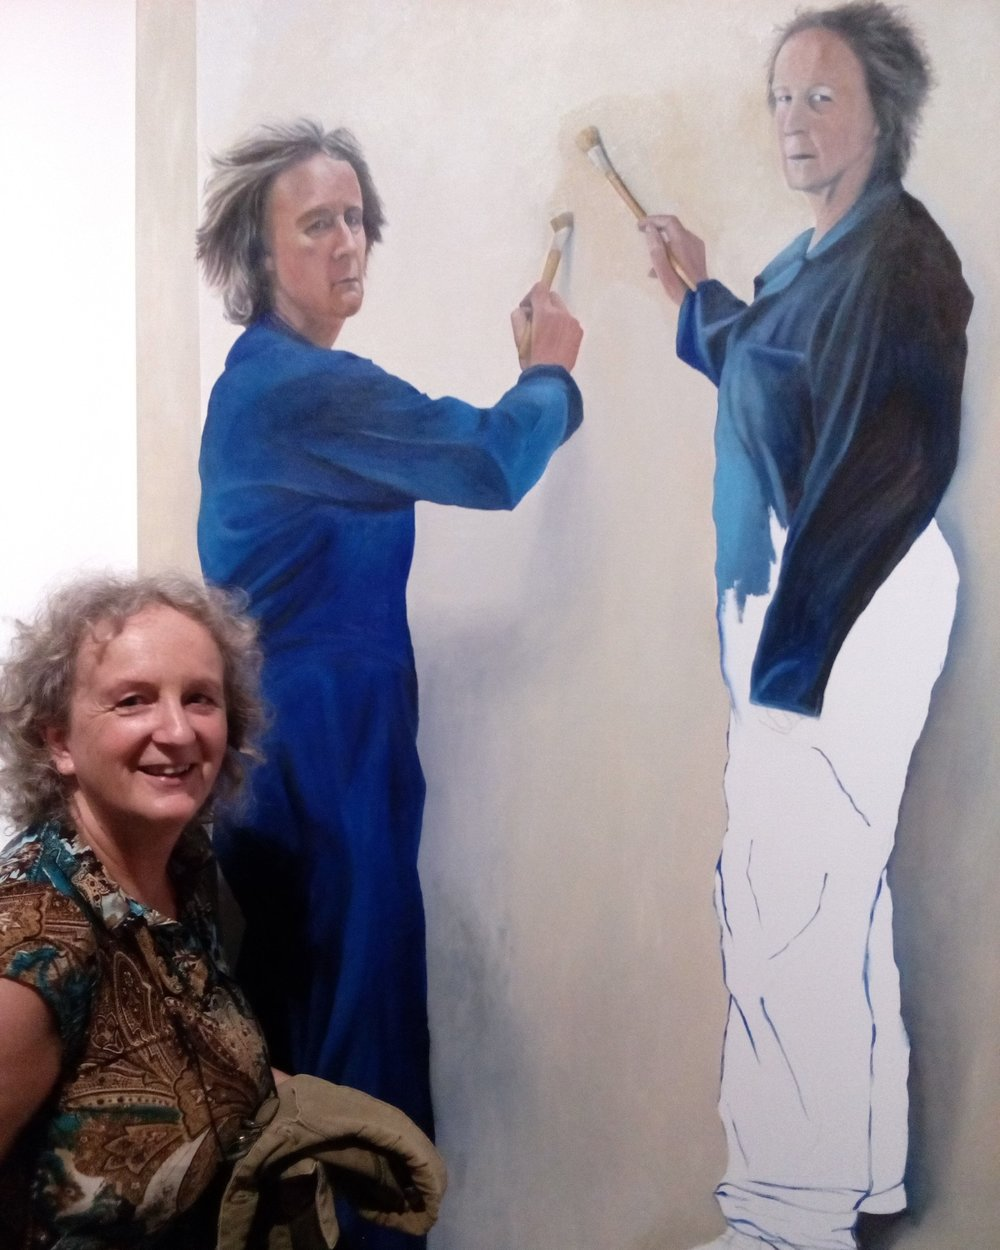 Susan Mabin standing next to her self portrait which was selected for the 2018 Adam Portrait Award